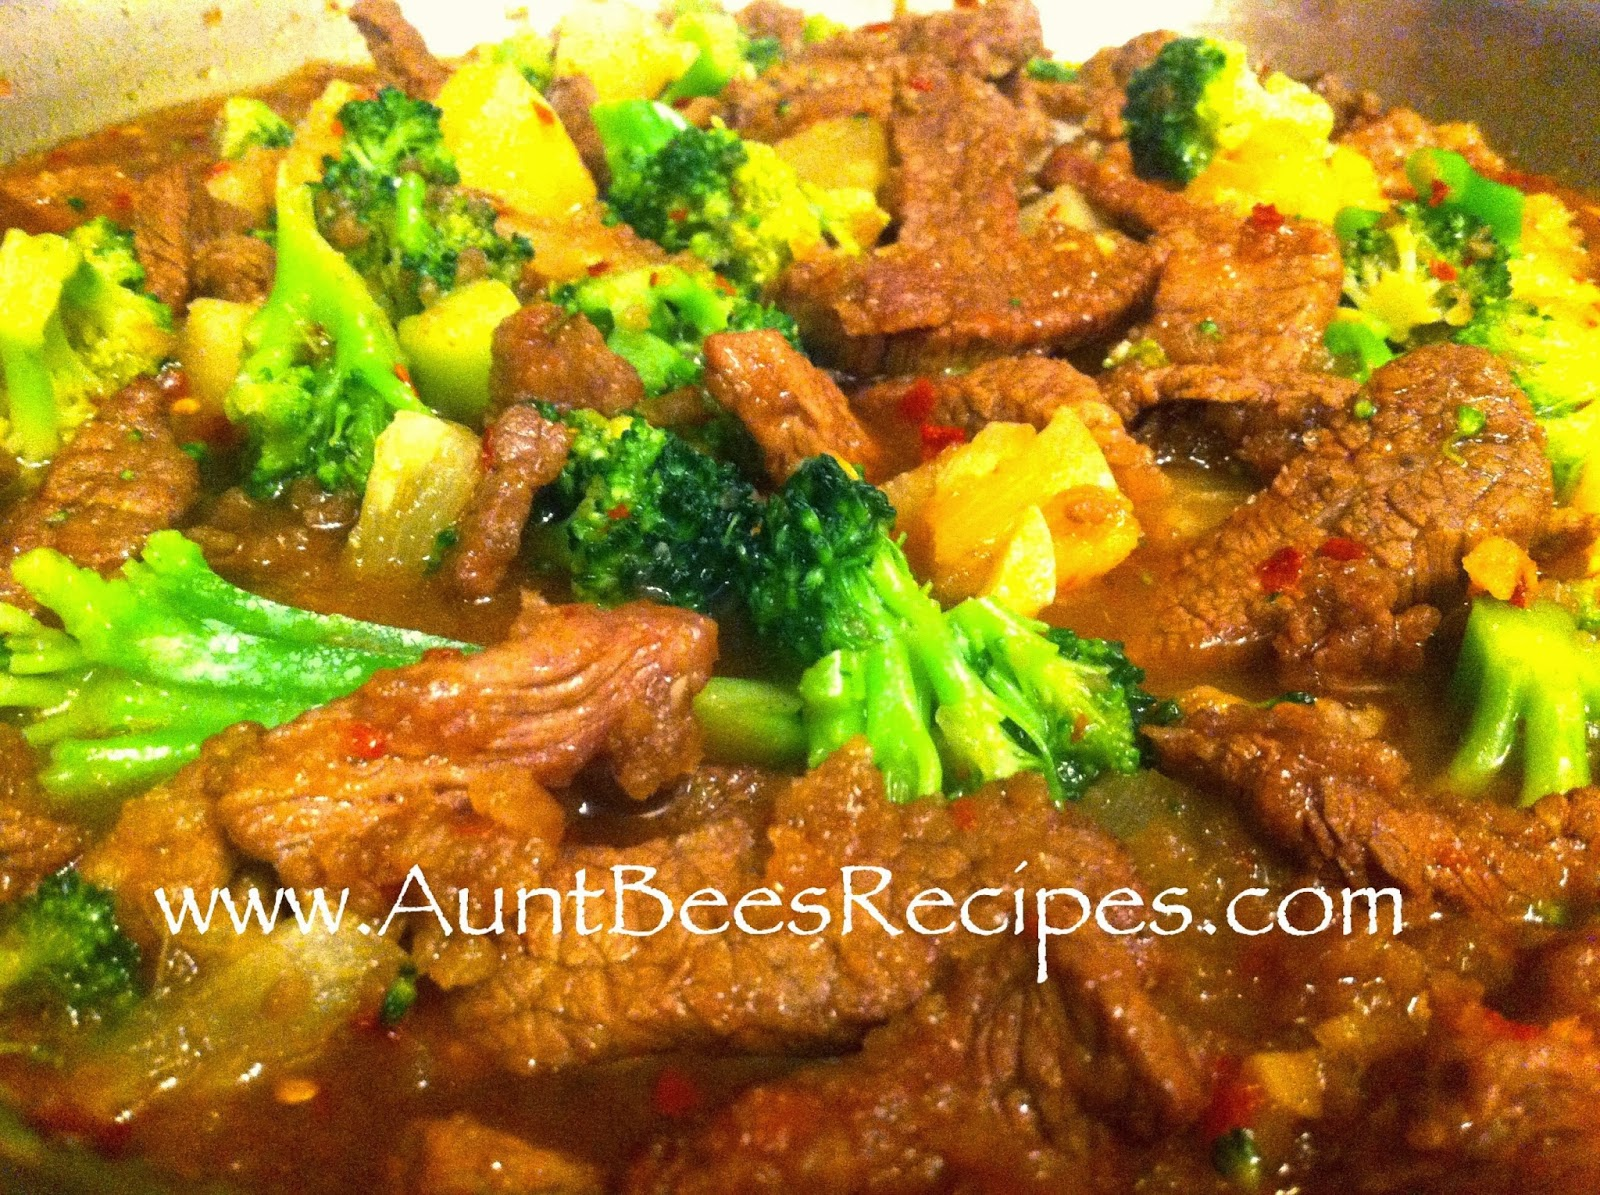 Peppery Pineapple Beef and Broccoli Stir-Fry - Aunt Bee's Recipes